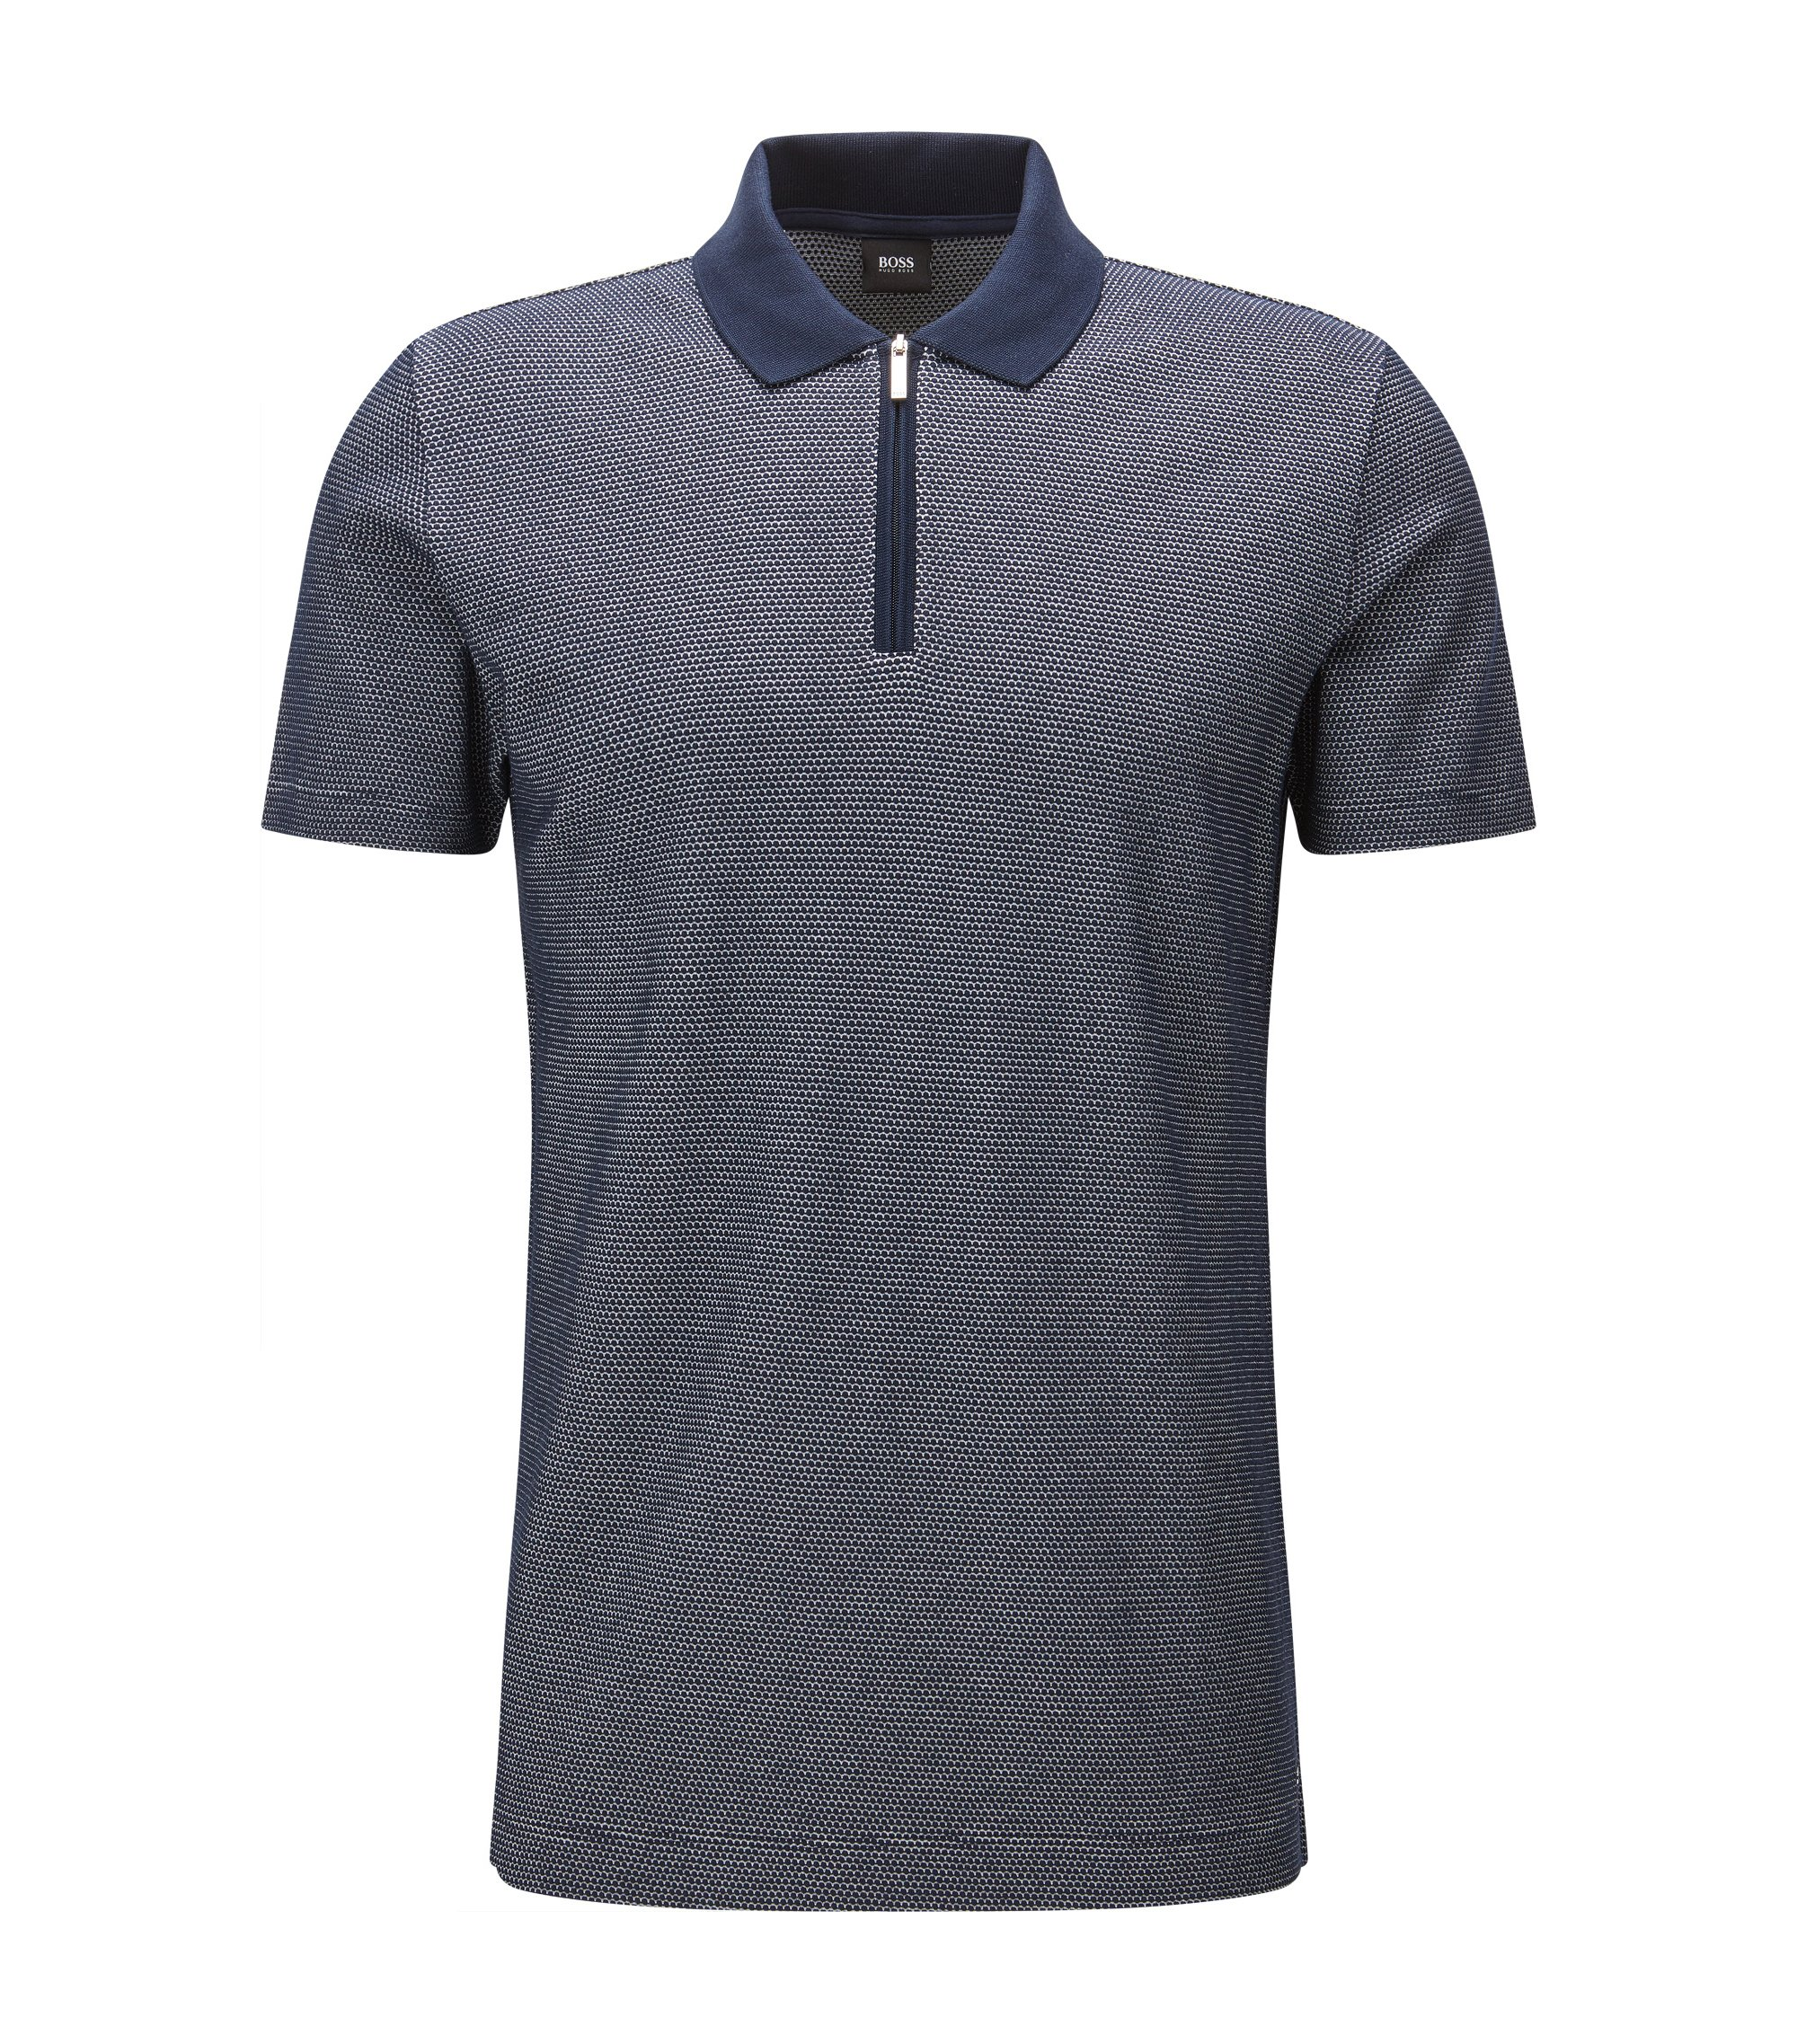 Patterned Mercerized Pima Cotton Polo Shirt, Slim Fit | Polston, Dark Blue